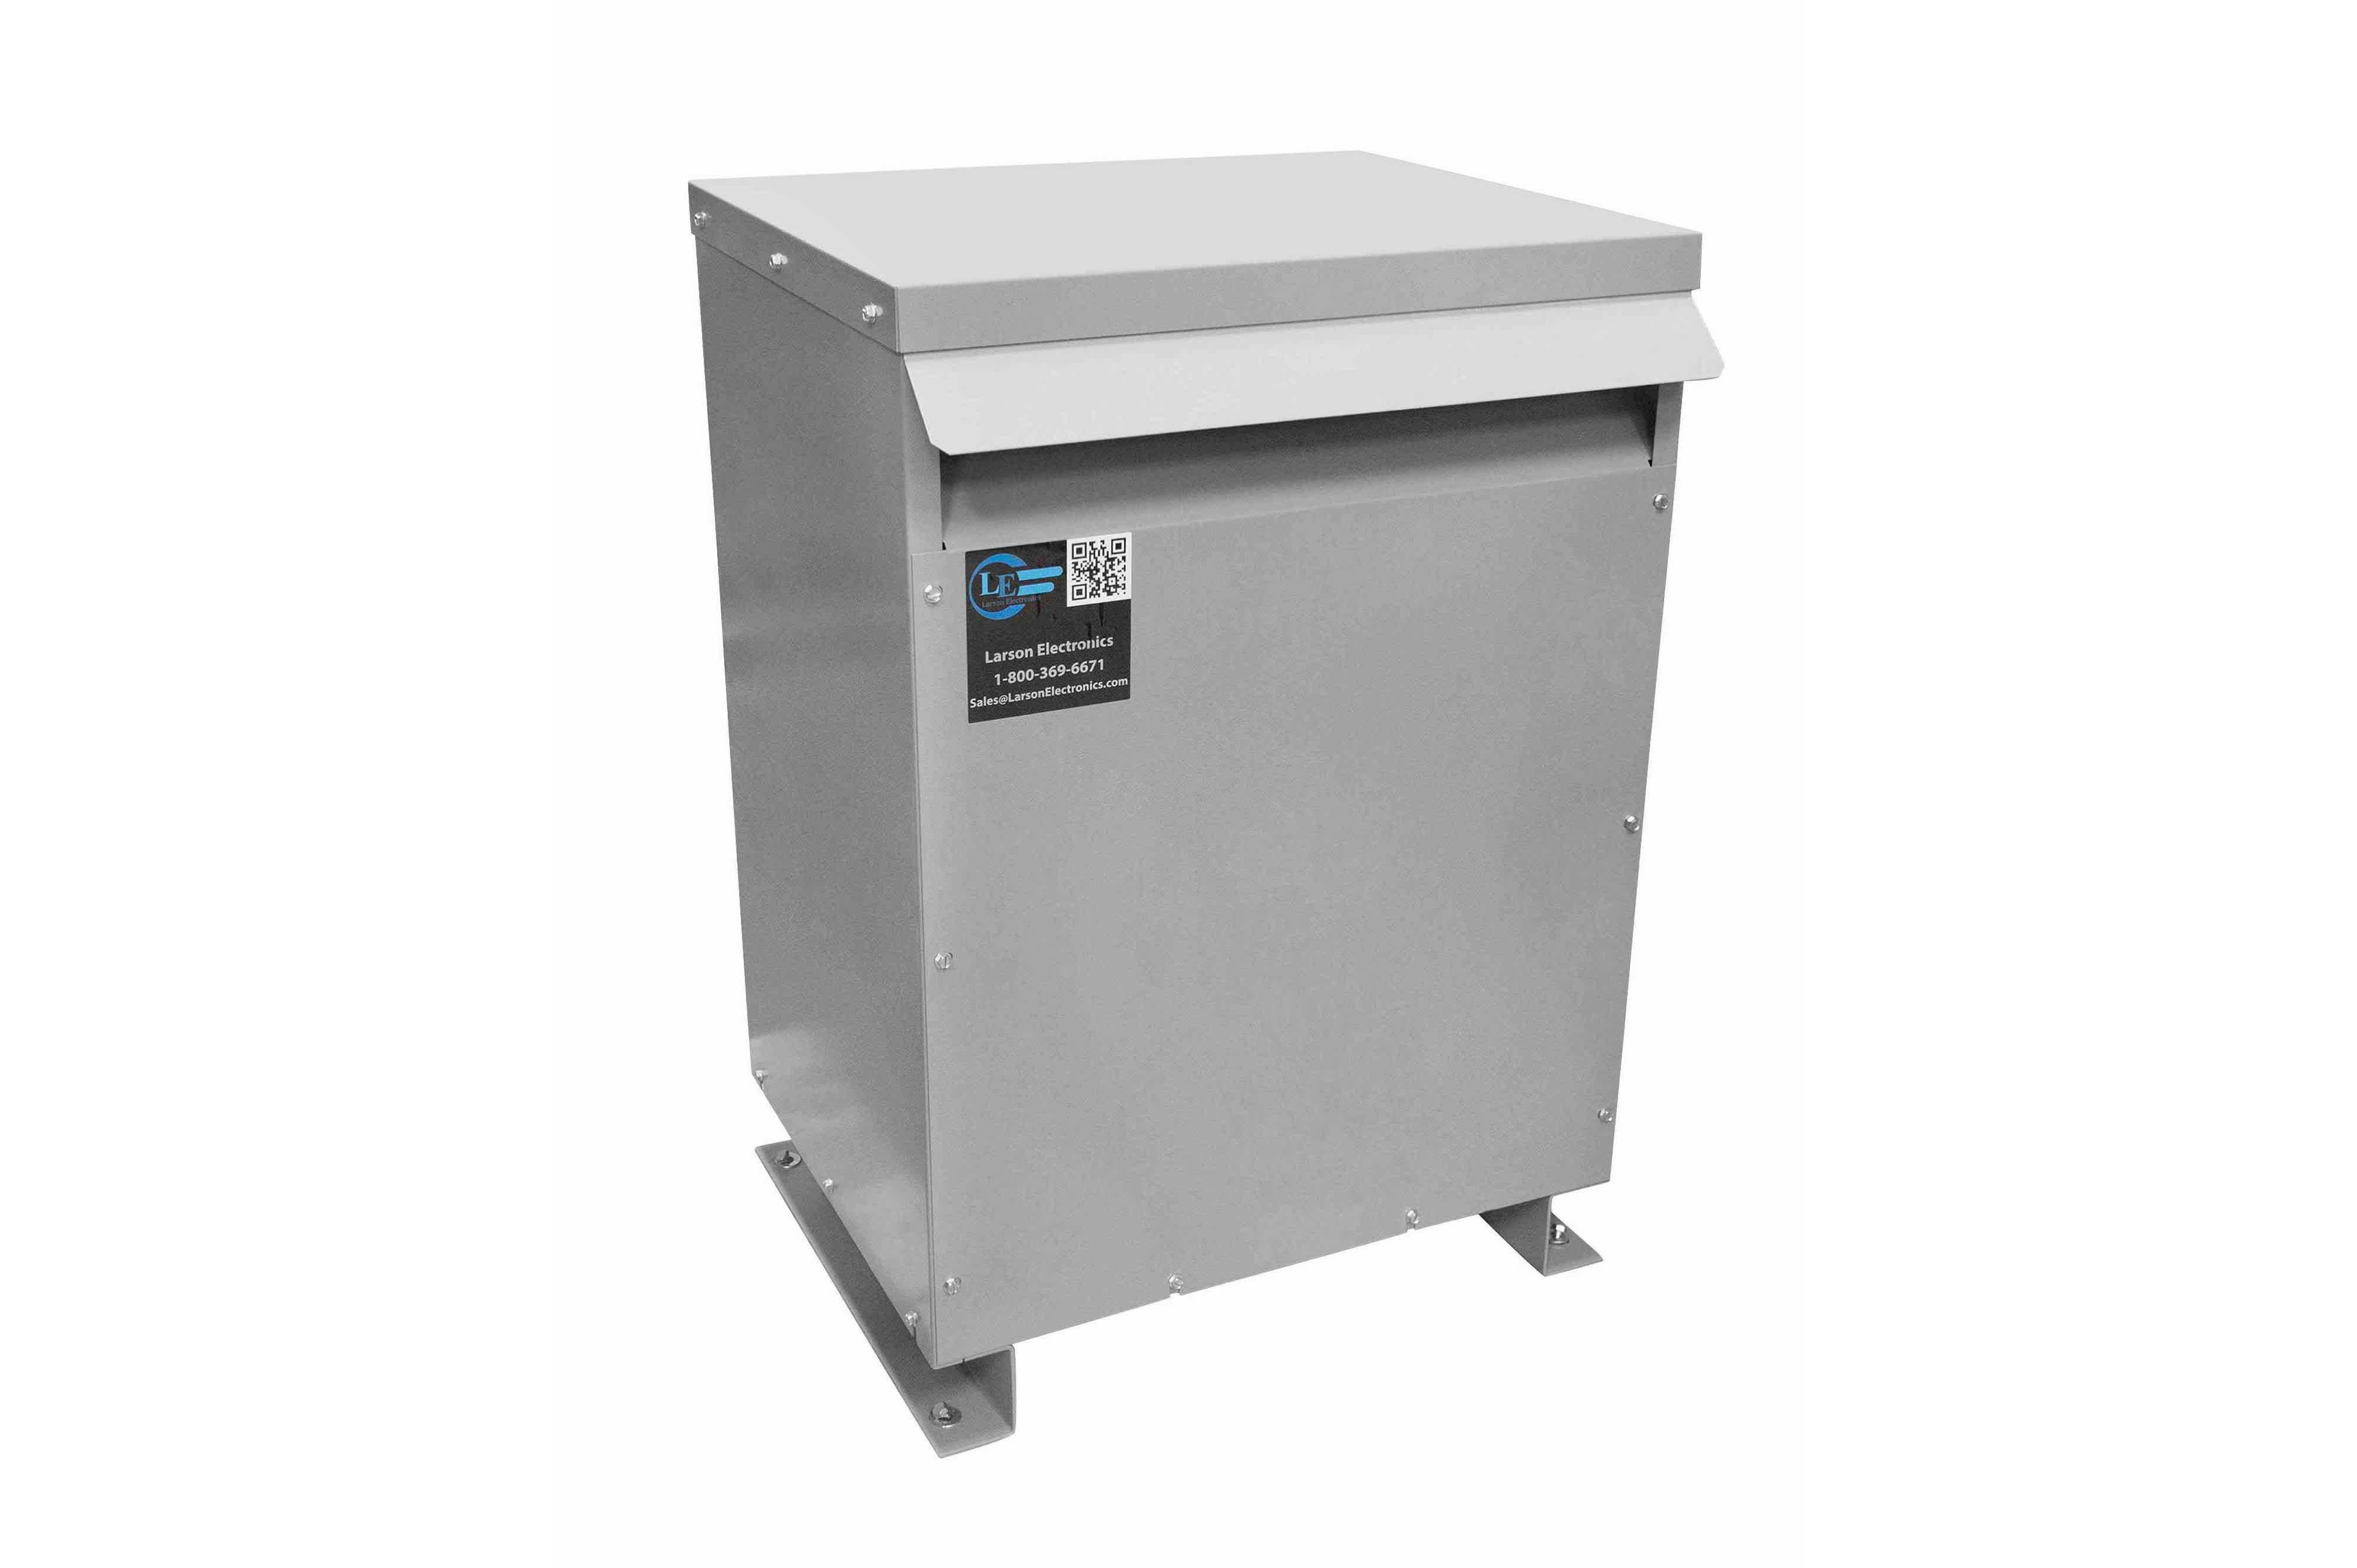 42.5 kVA 3PH Isolation Transformer, 415V Wye Primary, 240V/120 Delta Secondary, N3R, Ventilated, 60 Hz